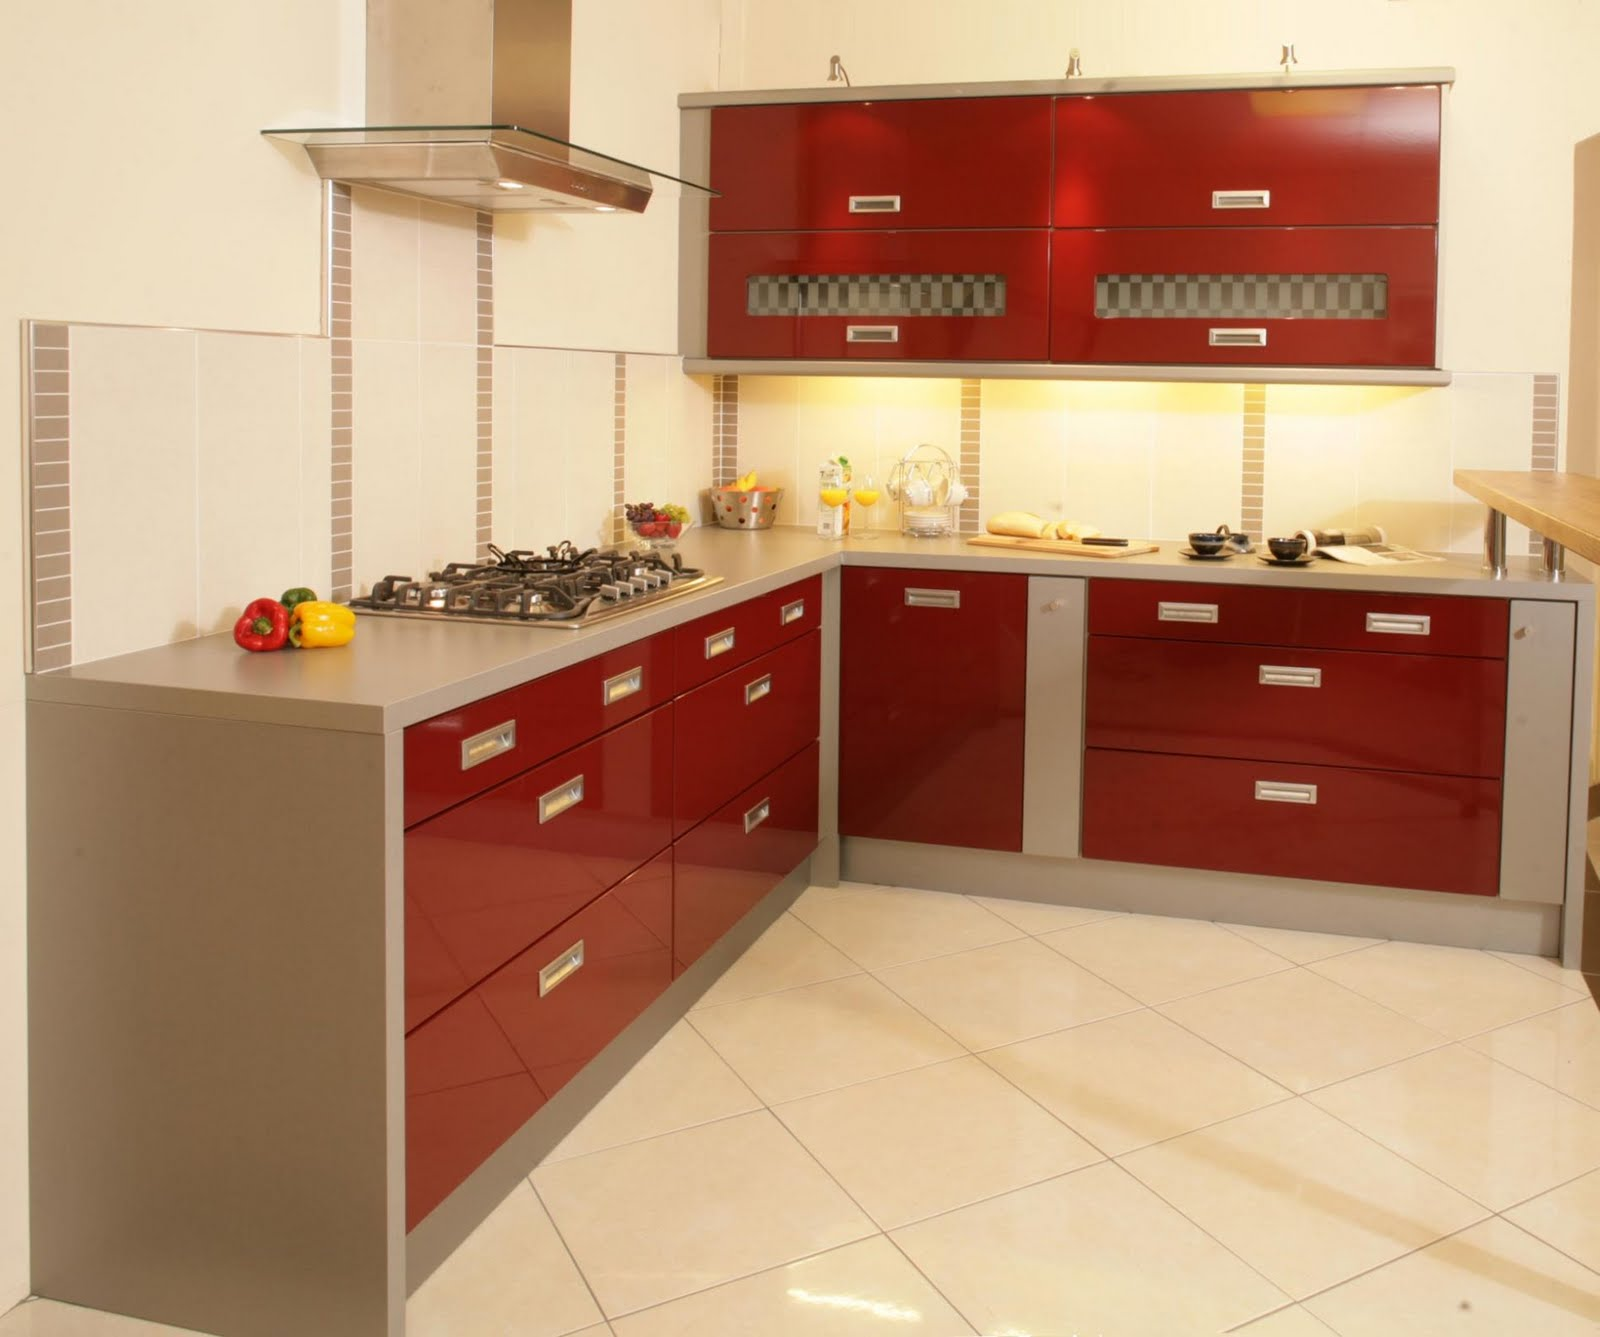 kitchen units for small spaces select kitchen design Kitchen units for small spaces large and beautiful photos Photo to select Kitchen units for small spaces Design your home